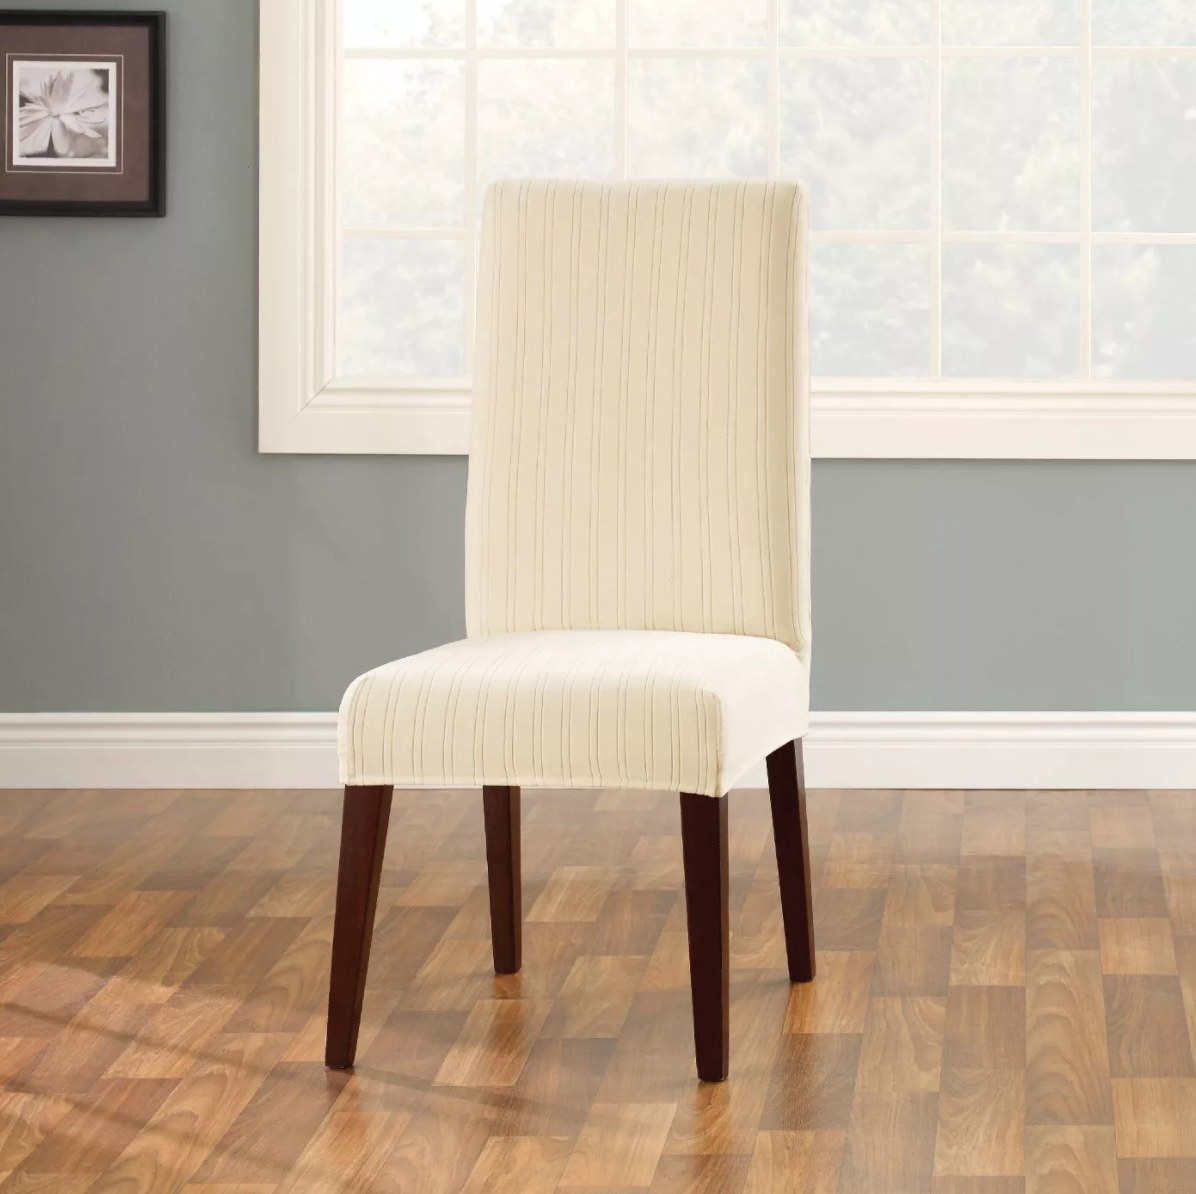 The short dining room chair cover in cream on a chair with wood legs